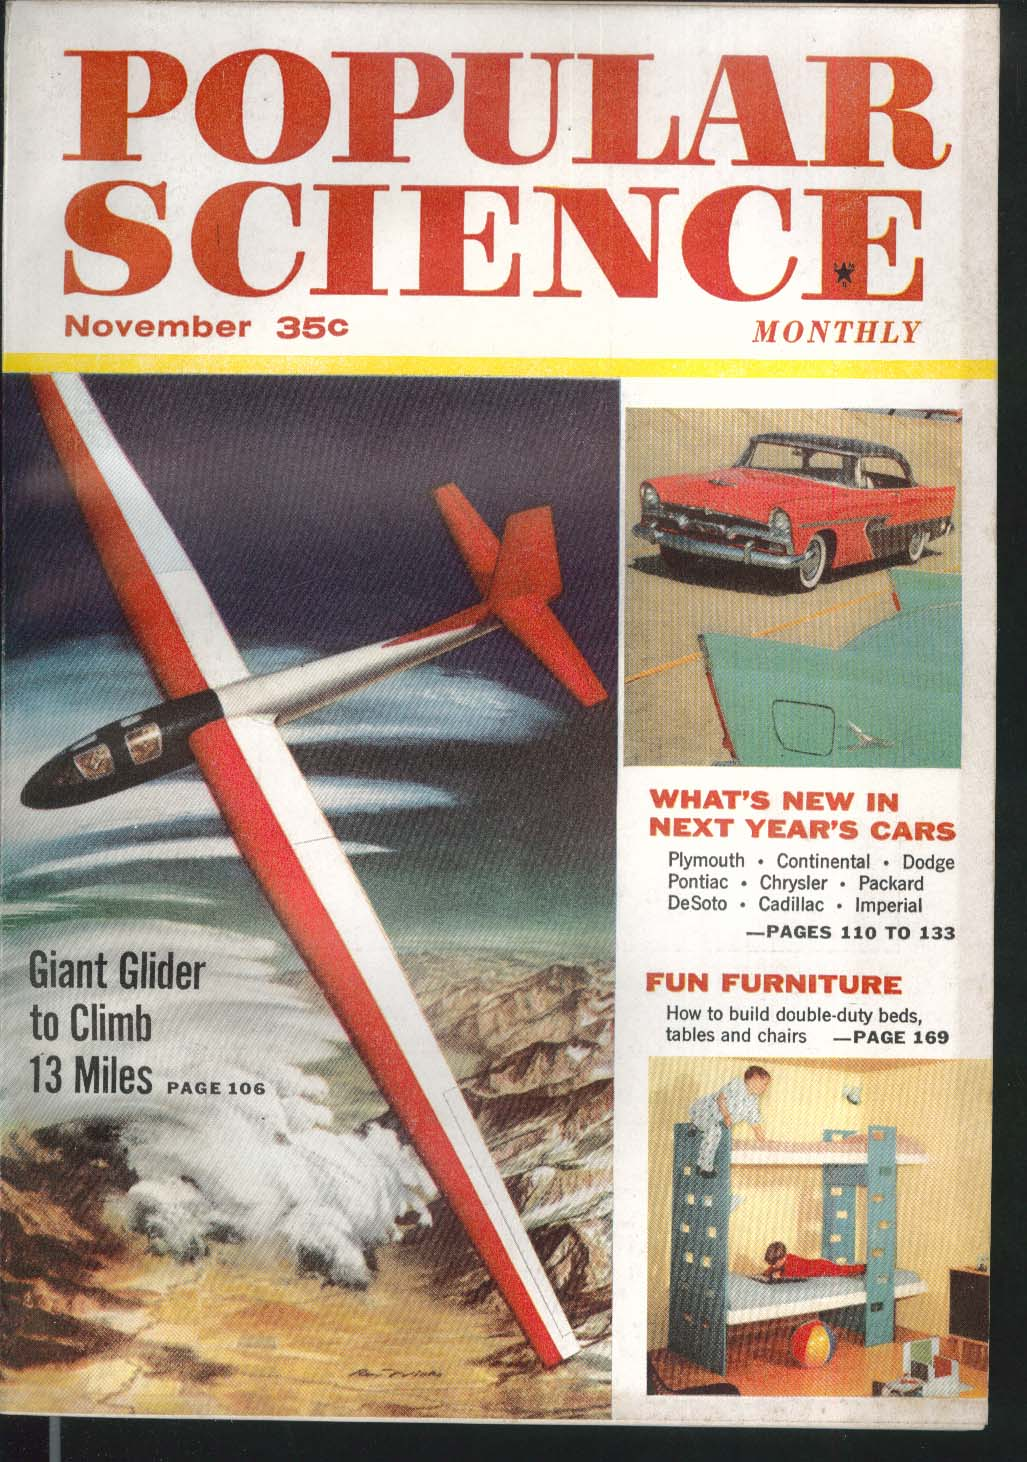 POPULAR SCIENCE 1956 Plymouth Continental Dodge Pontiac Chrysler Packard 11 1955